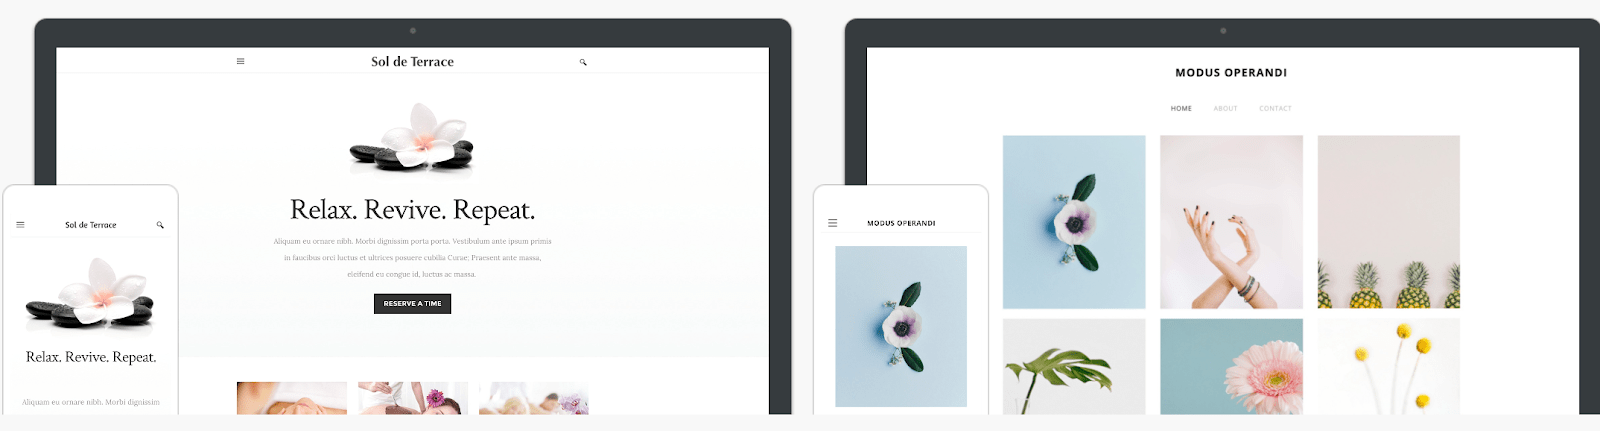 Modus Operandi and Sol de Terrace Weebly themes